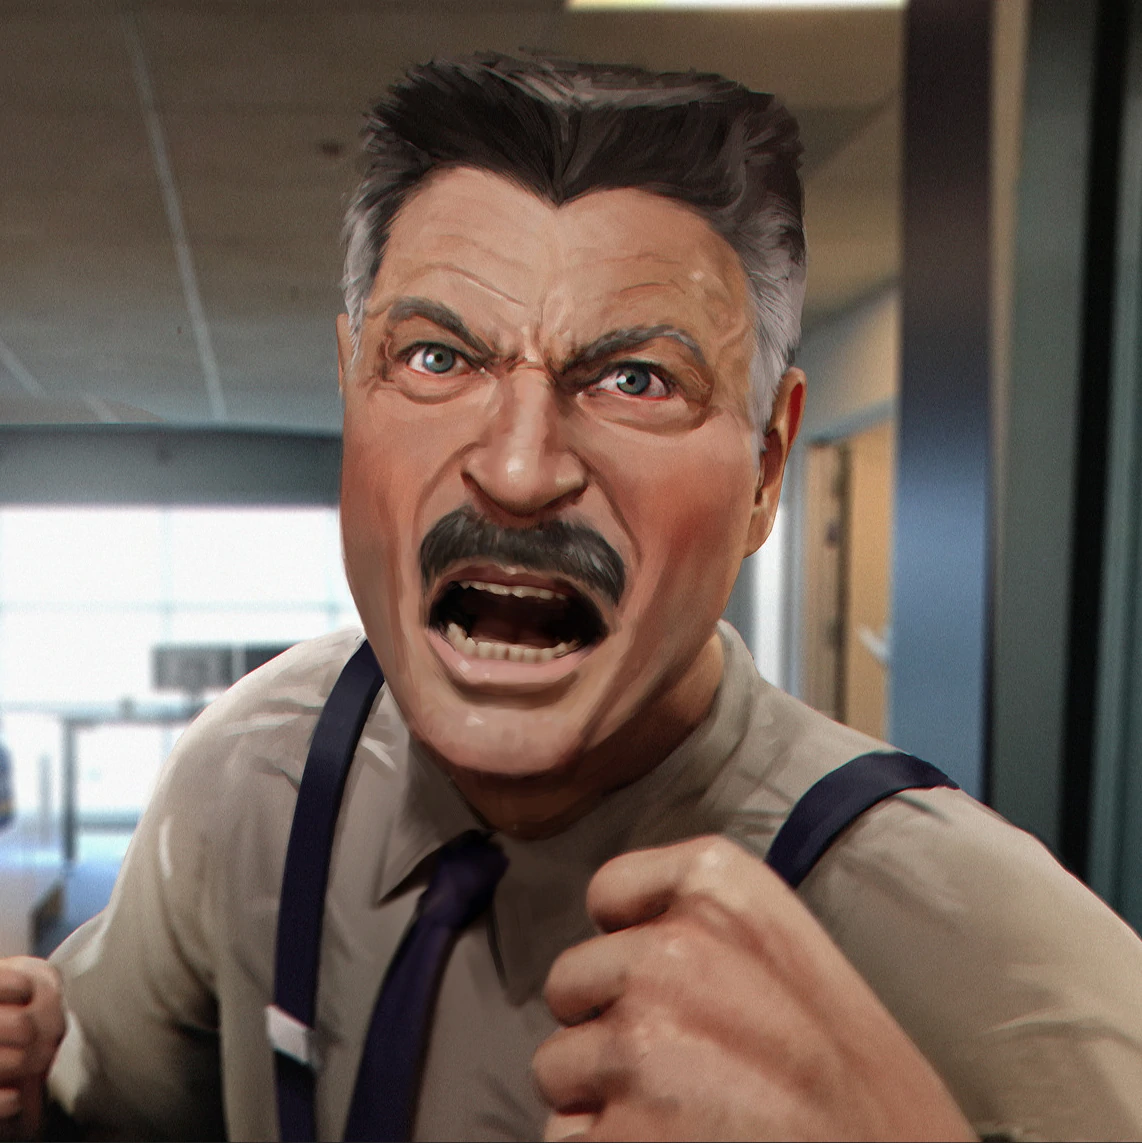 John Jonah Jameson (Earth-1048)